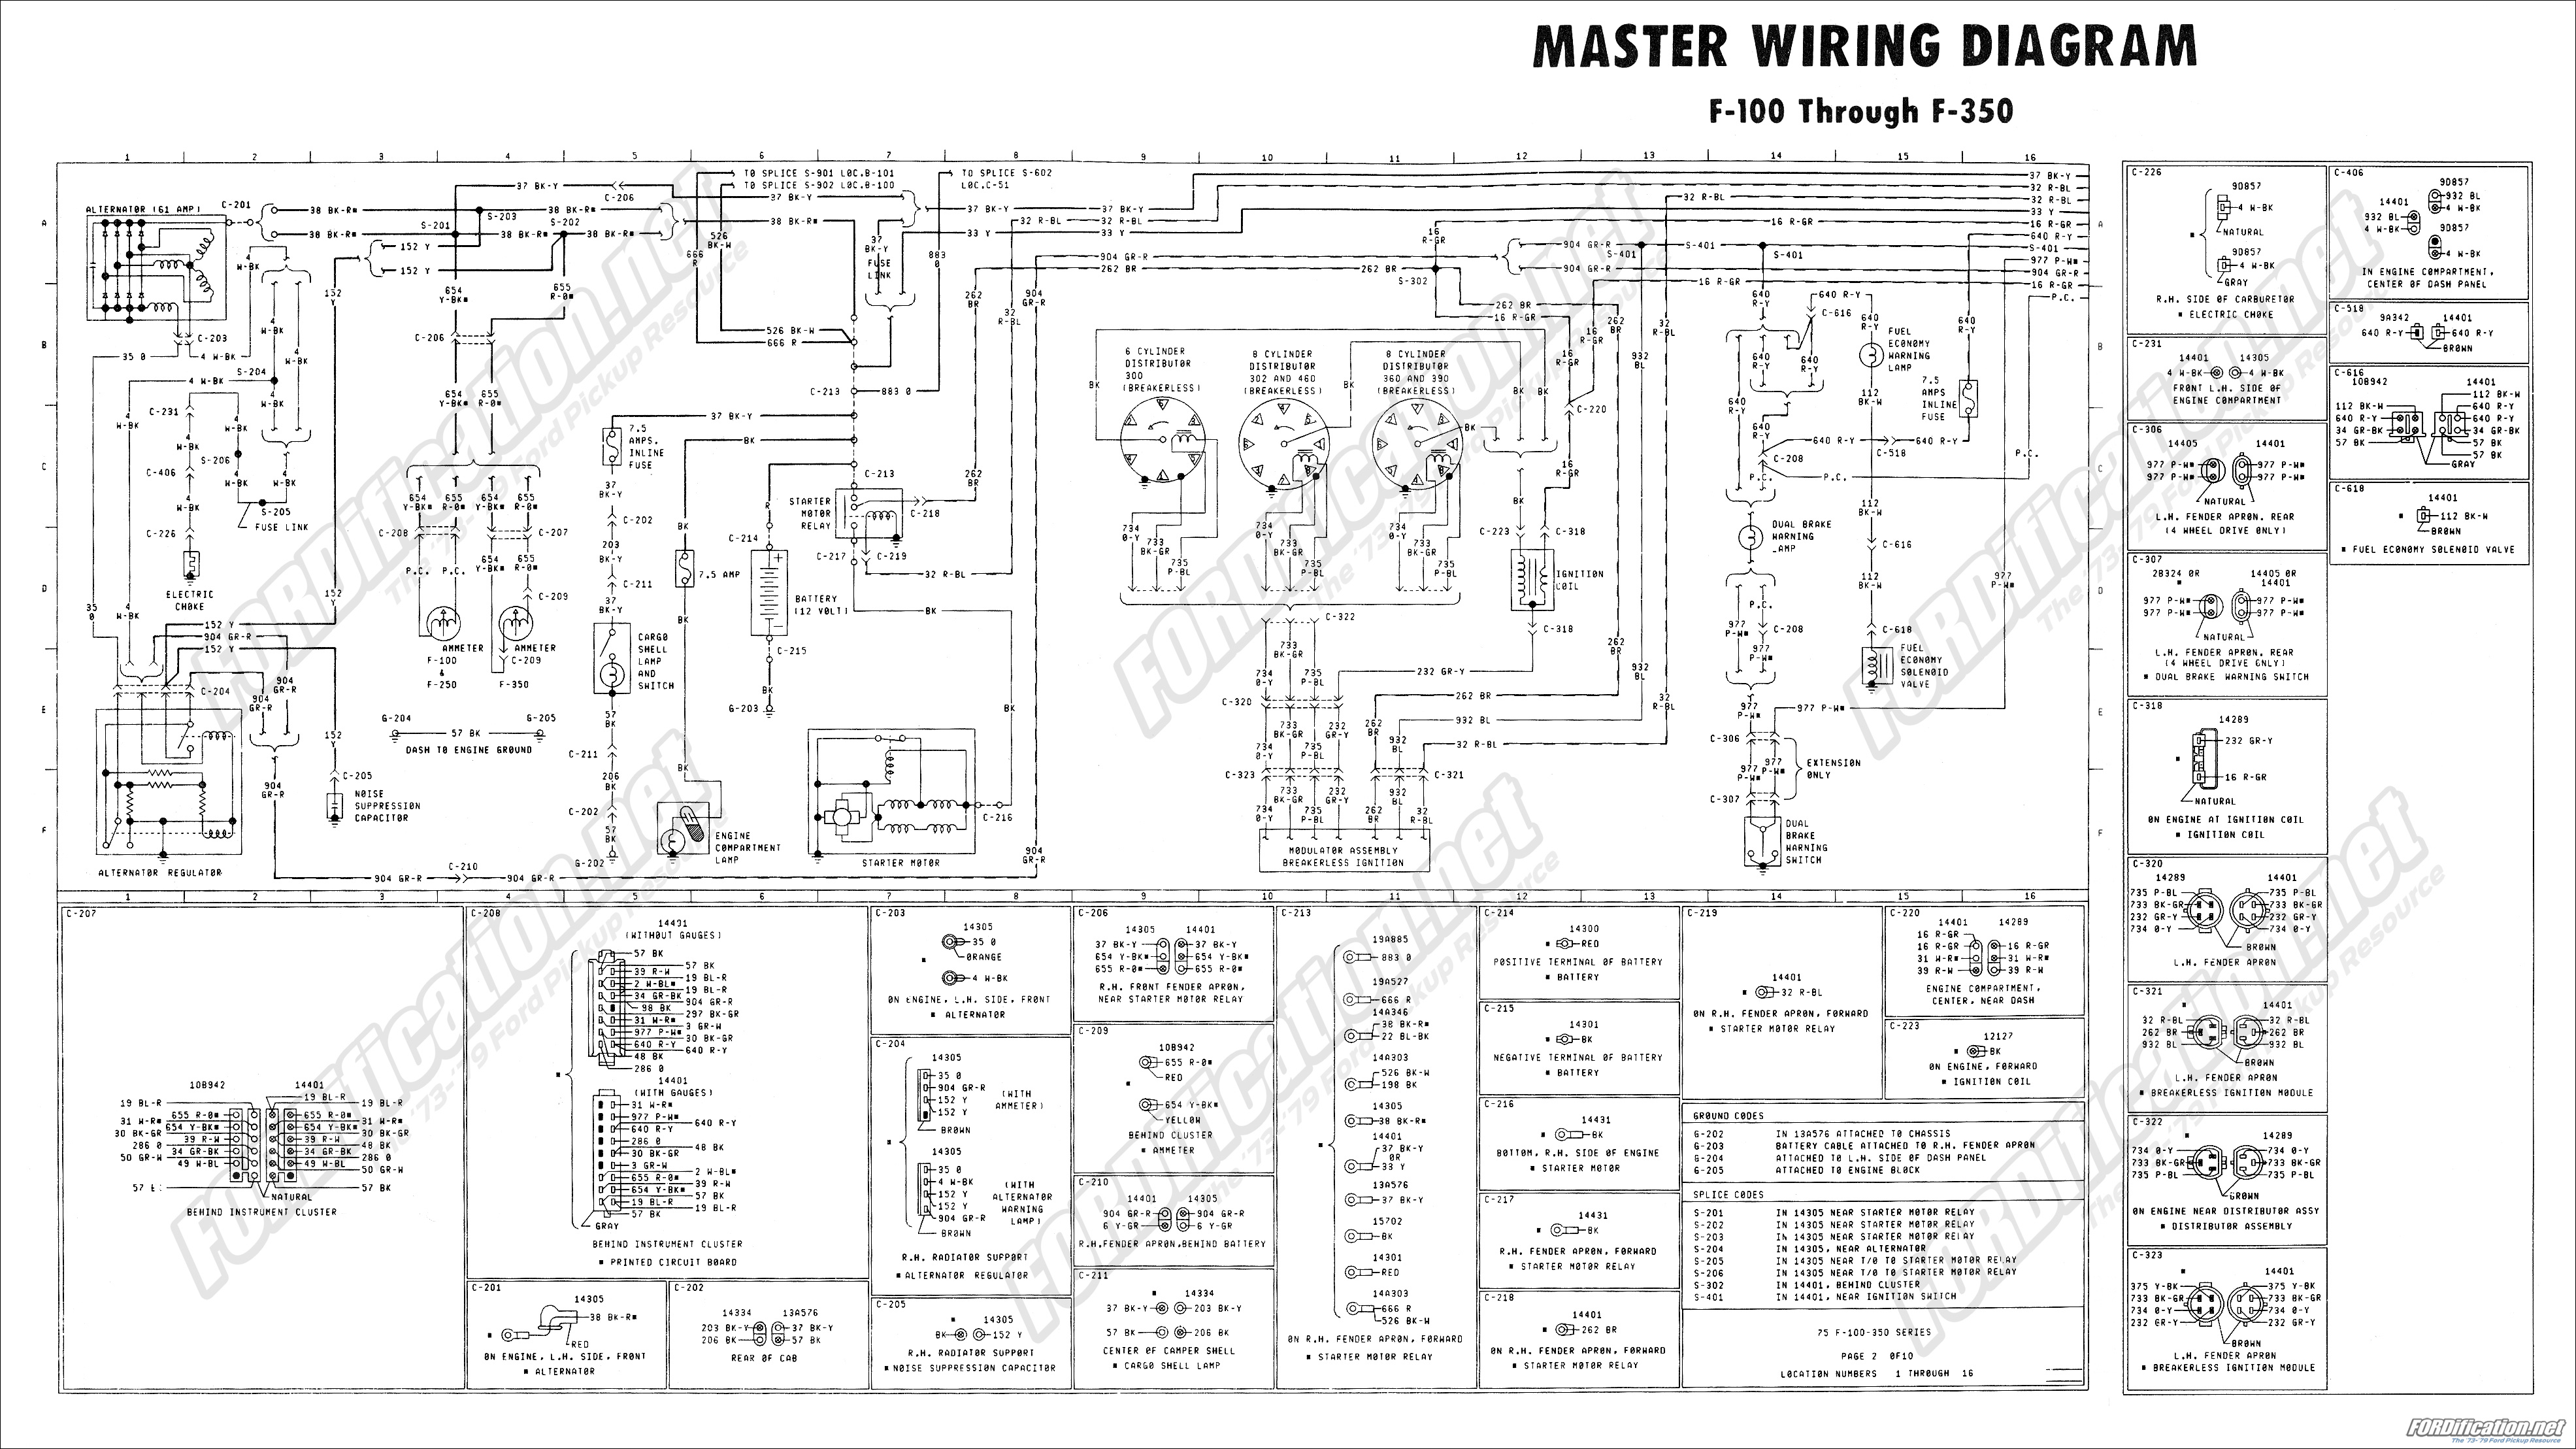 Alternator For F150 Wiring Diagram Wiring Diagram